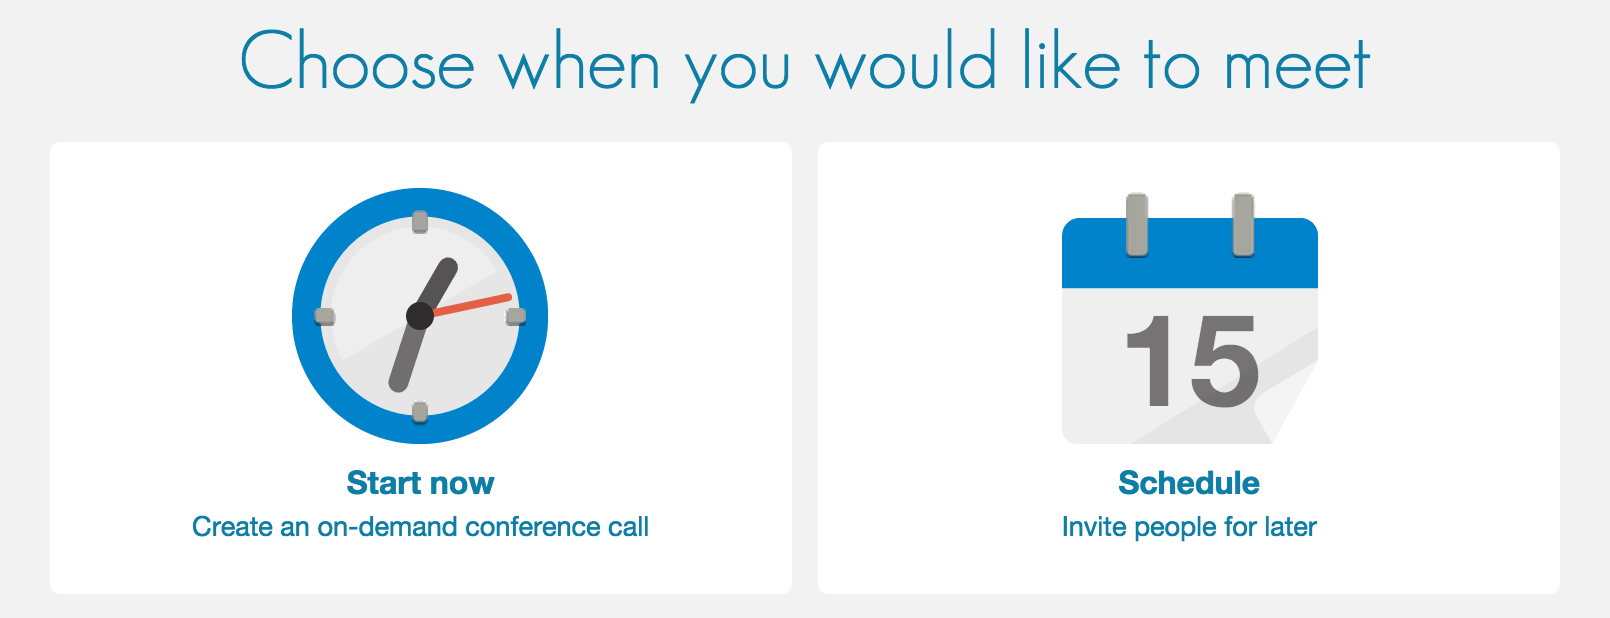 Meet now or Schedule for later - start a reservationless conference call